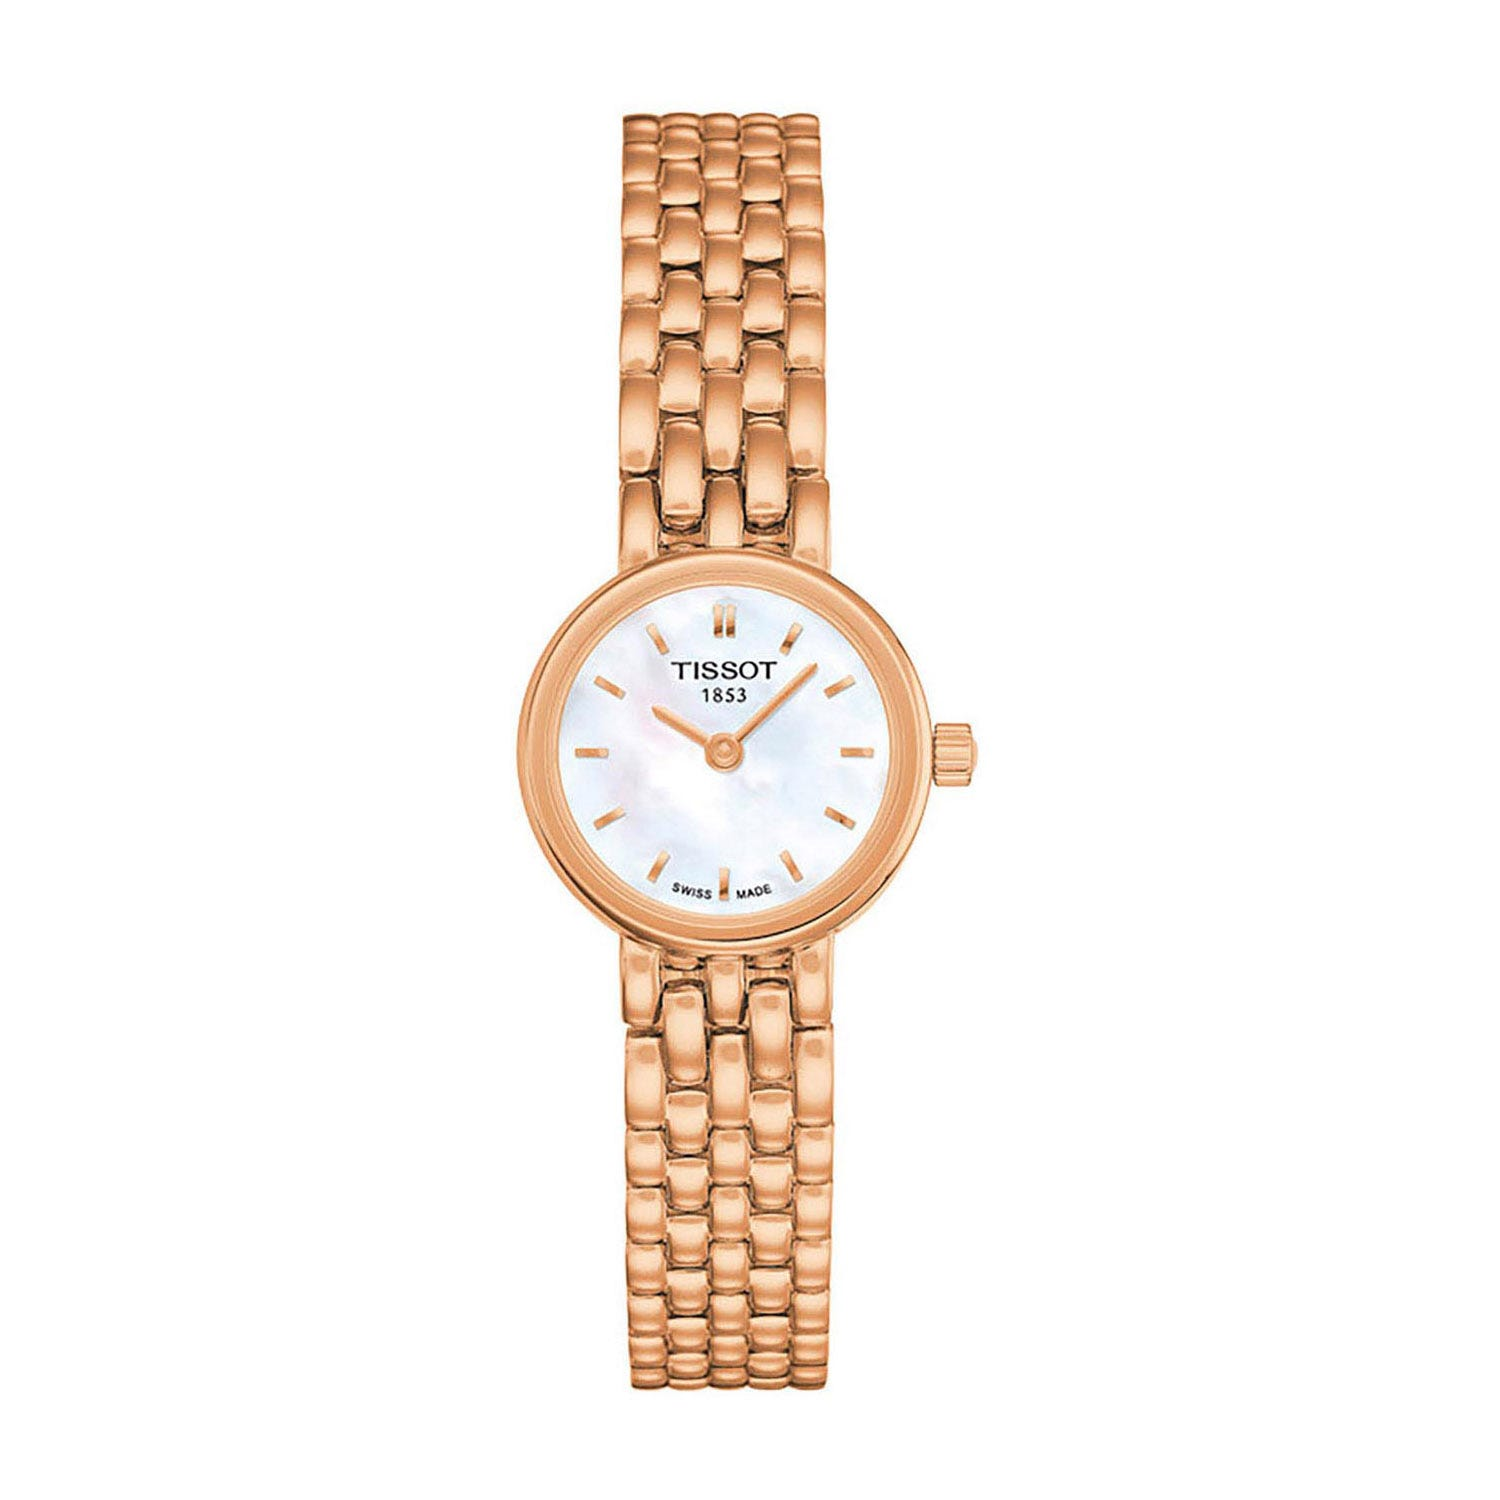 Tissot Lovely ladies' rose gold-plated watch